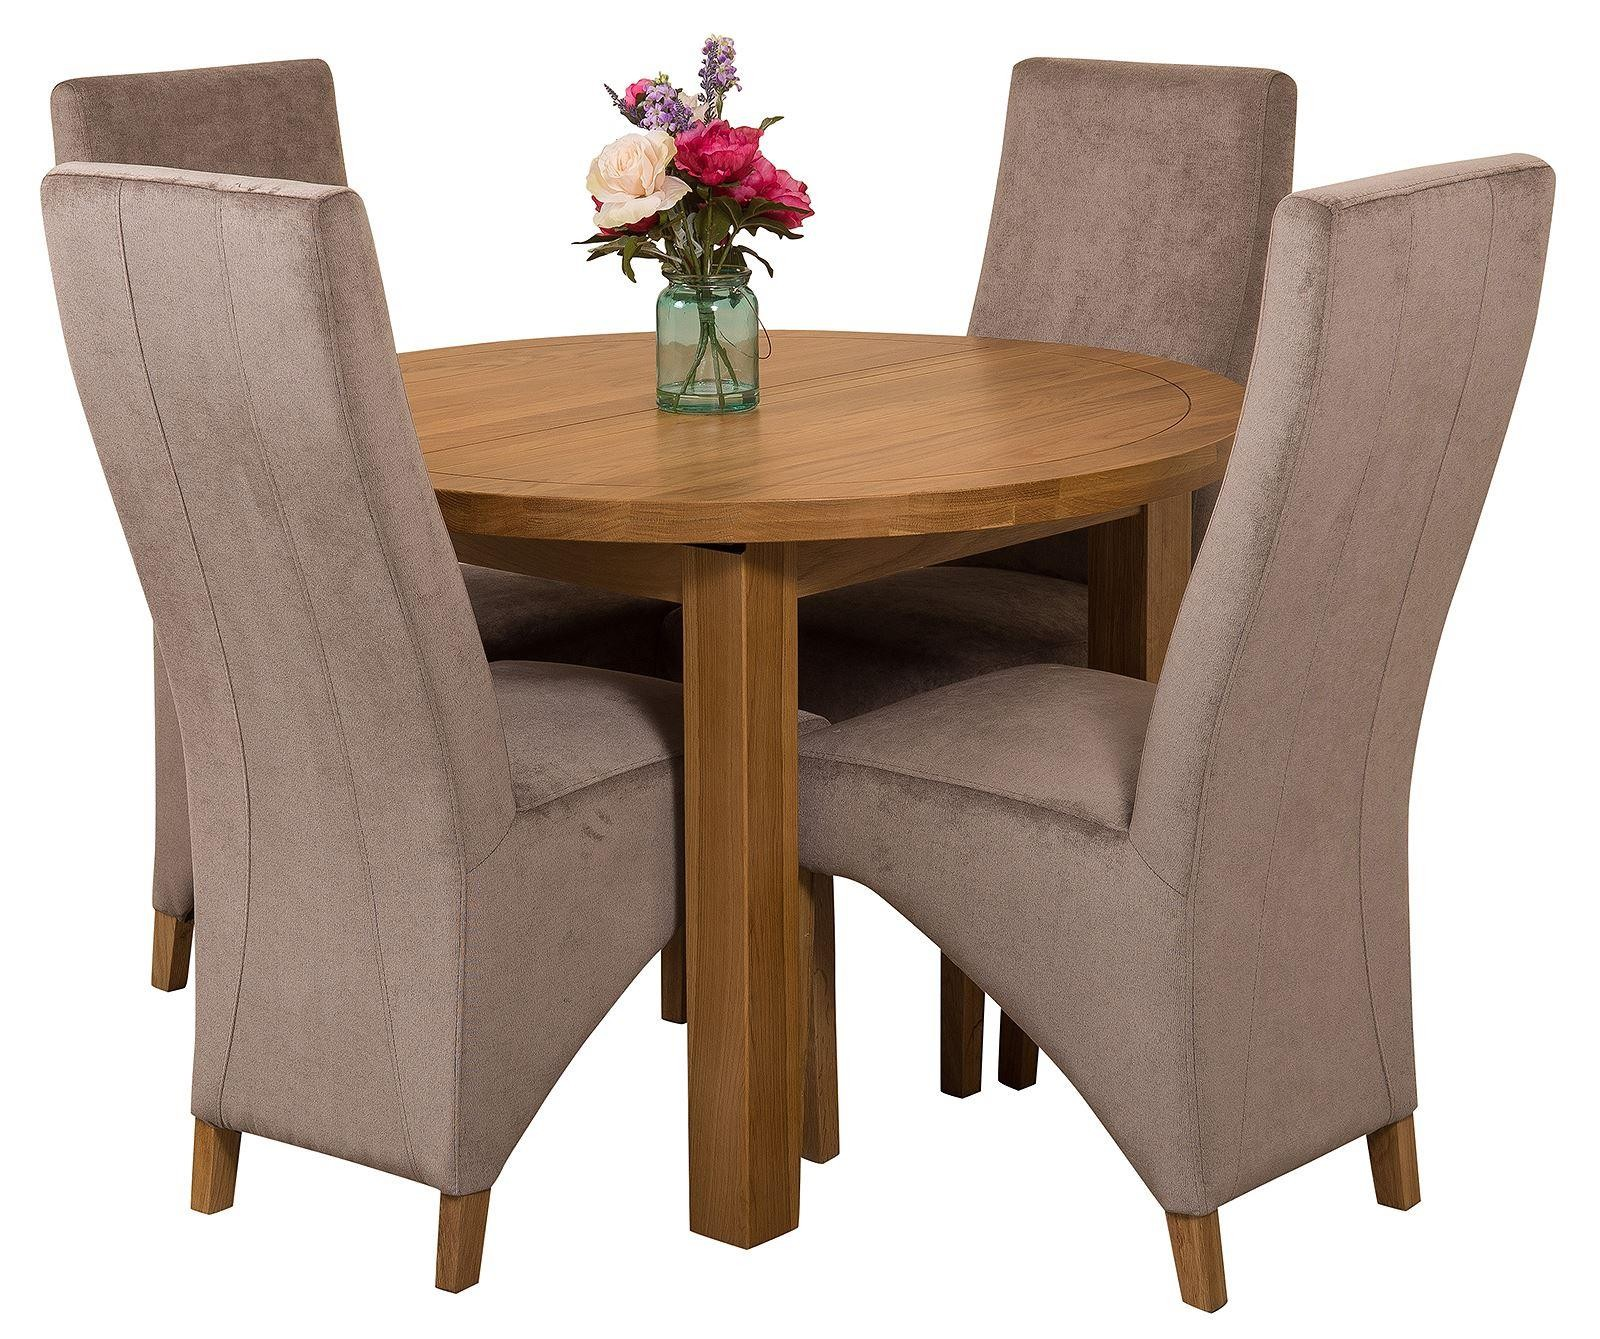 Edmonton Solid Oak Extending Oval Dining Table with 4 Lola Dining Chairs [Grey Fabric]